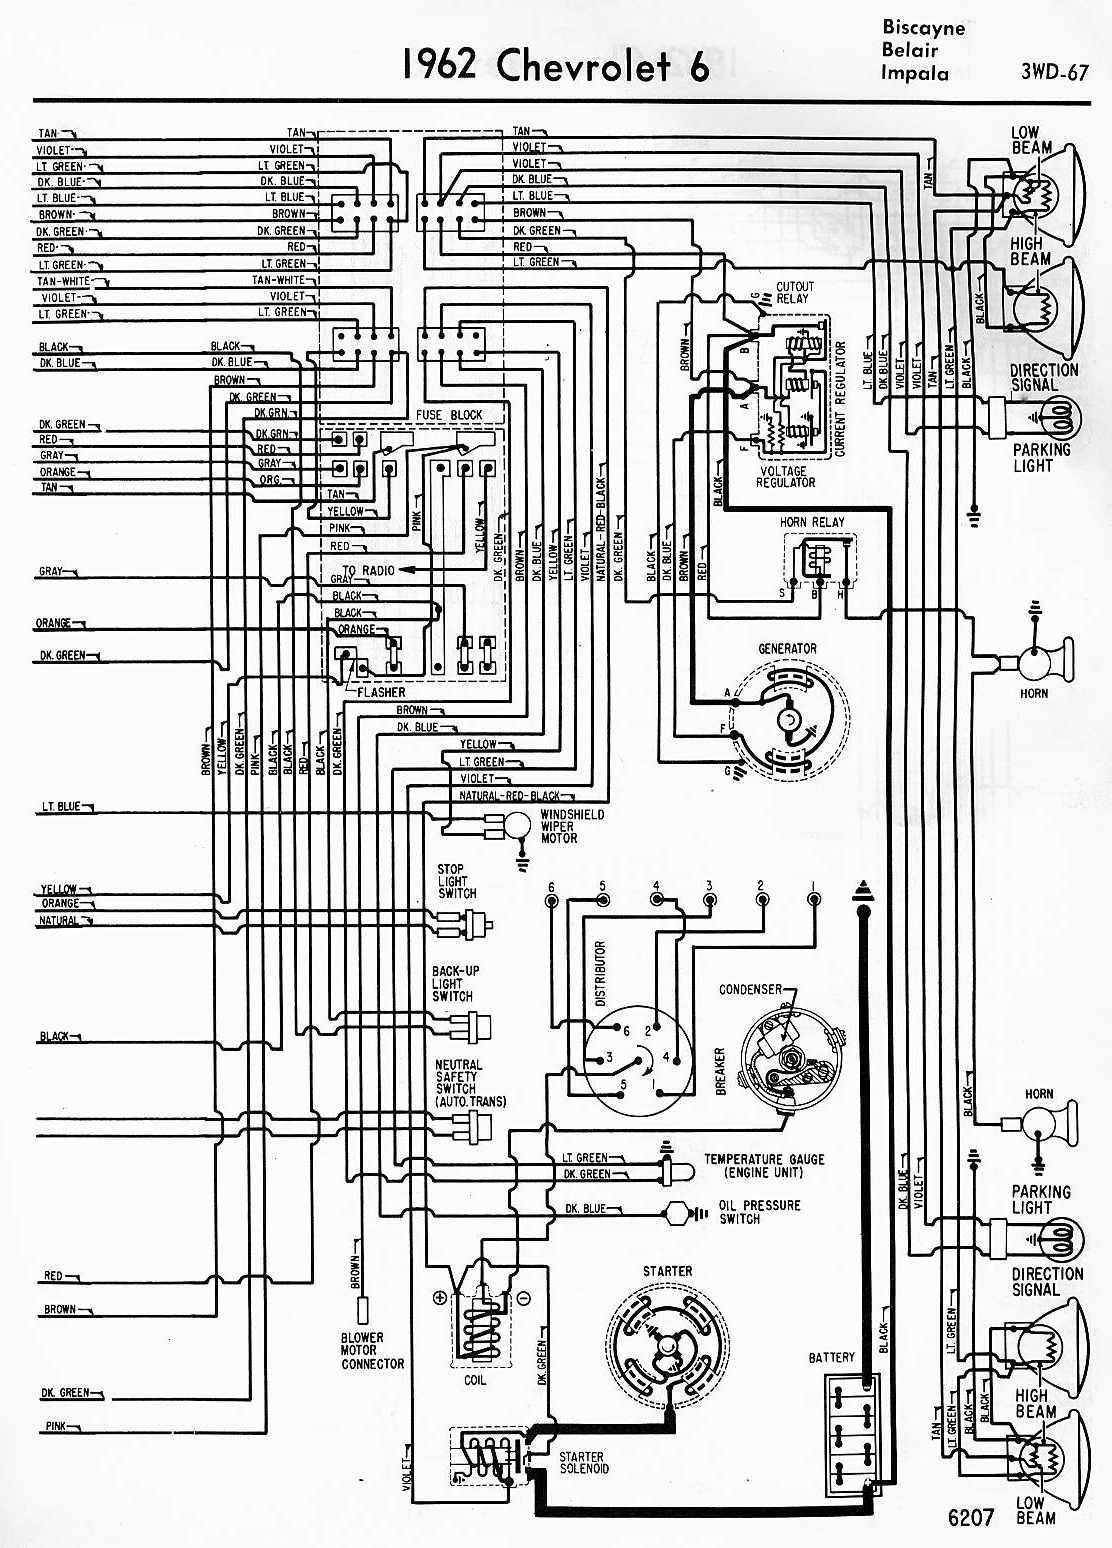 55 chevy belair wiring diagram free picture wiring diagram source 64 chevy wiring diagram 55 chevy belair wiring diagram free picture [ 1112 x 1548 Pixel ]